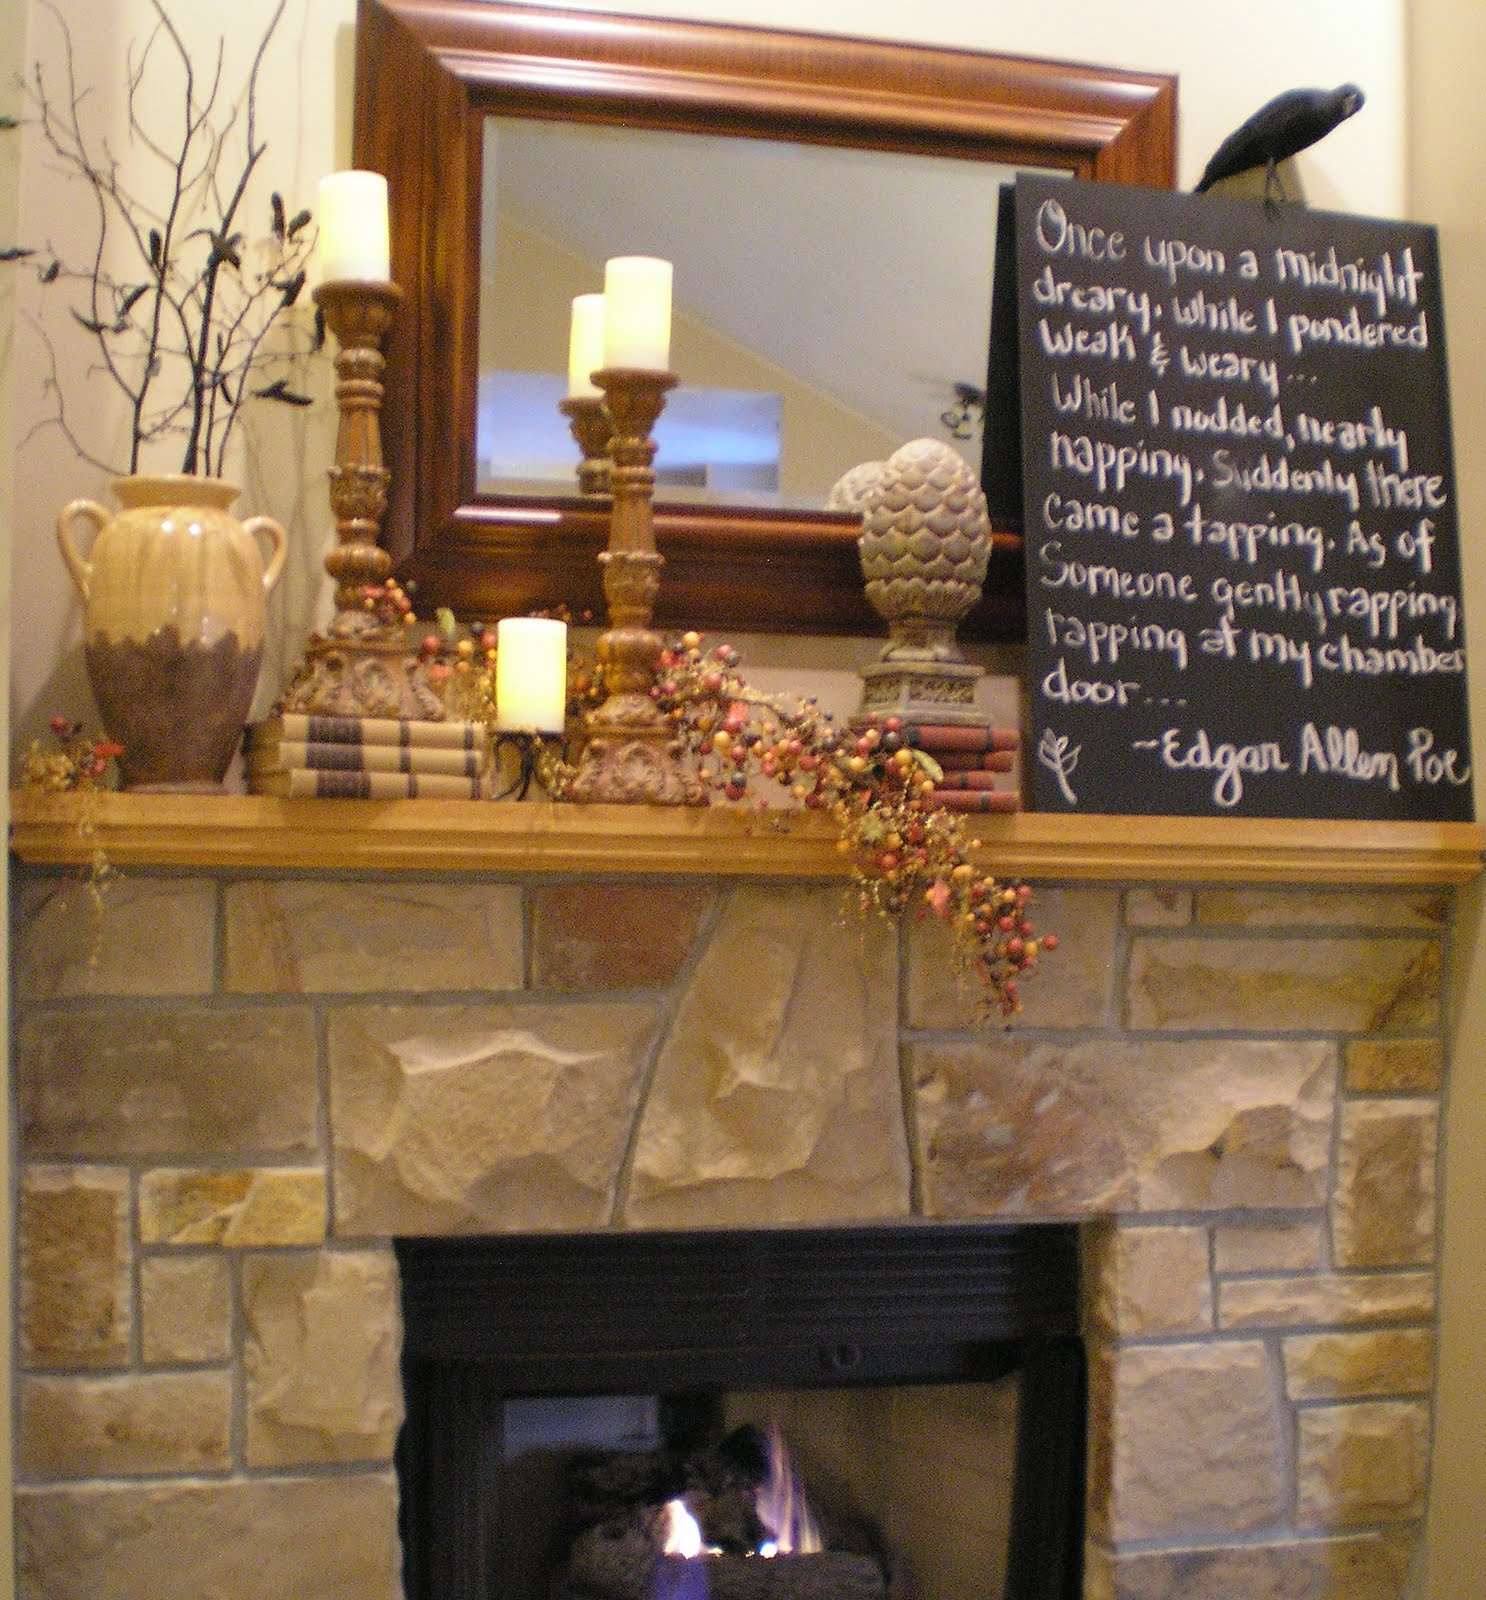 Decorating: WIP Blog: Autumn Mantel Decor Ideas